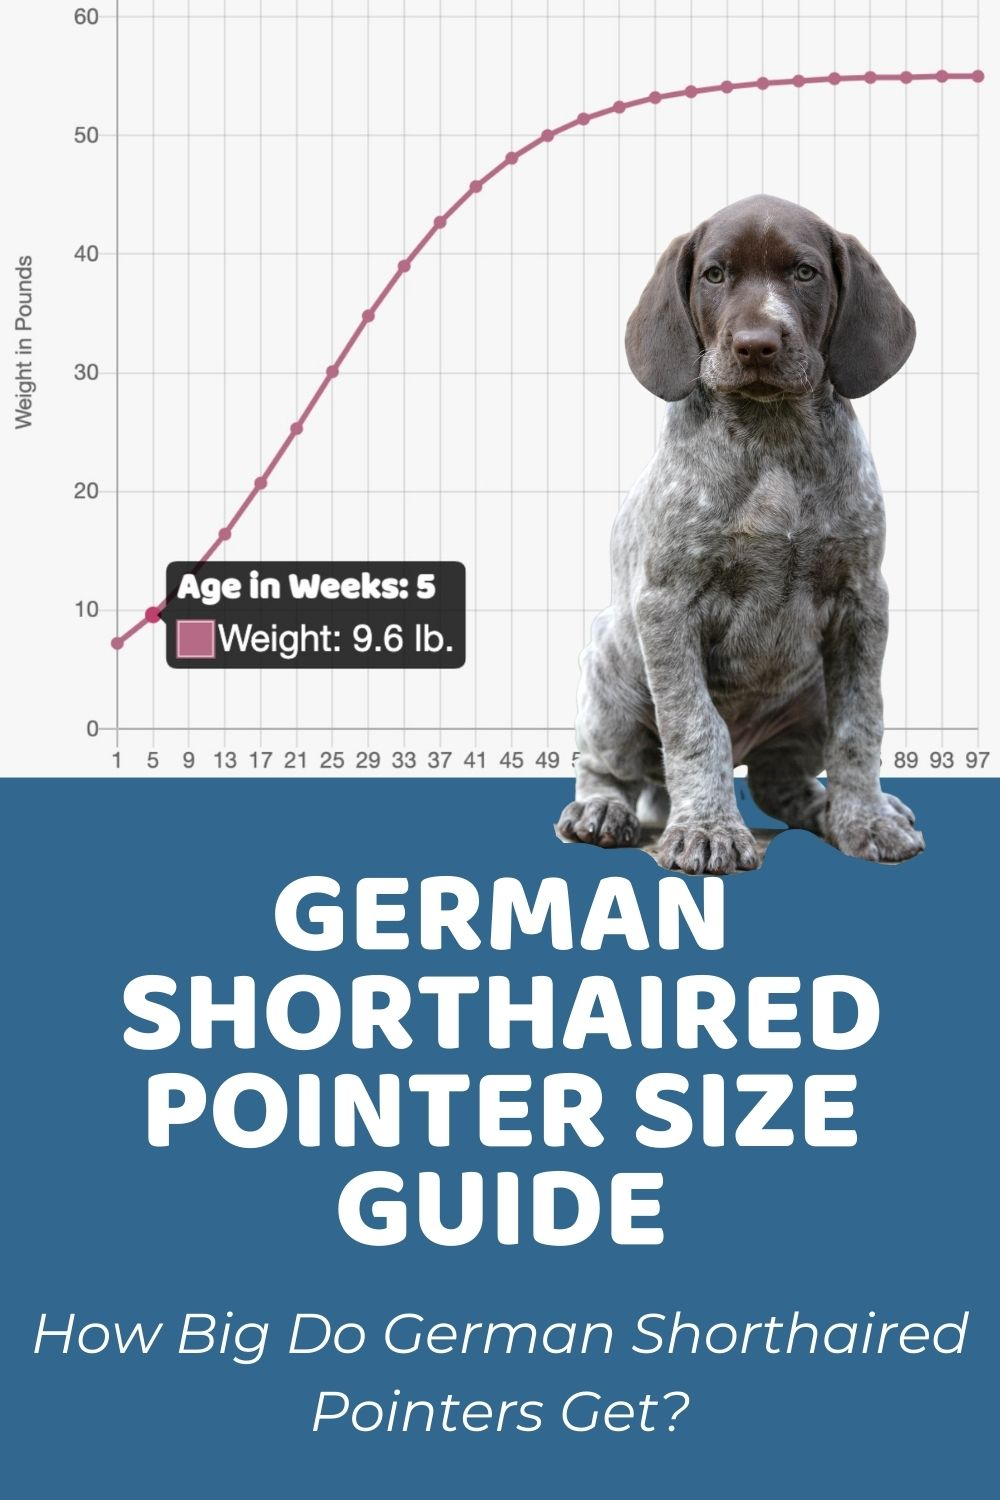 German Shorthaired Pointer Size Guide_ How Big Do German Shorthaired Pointers Get_